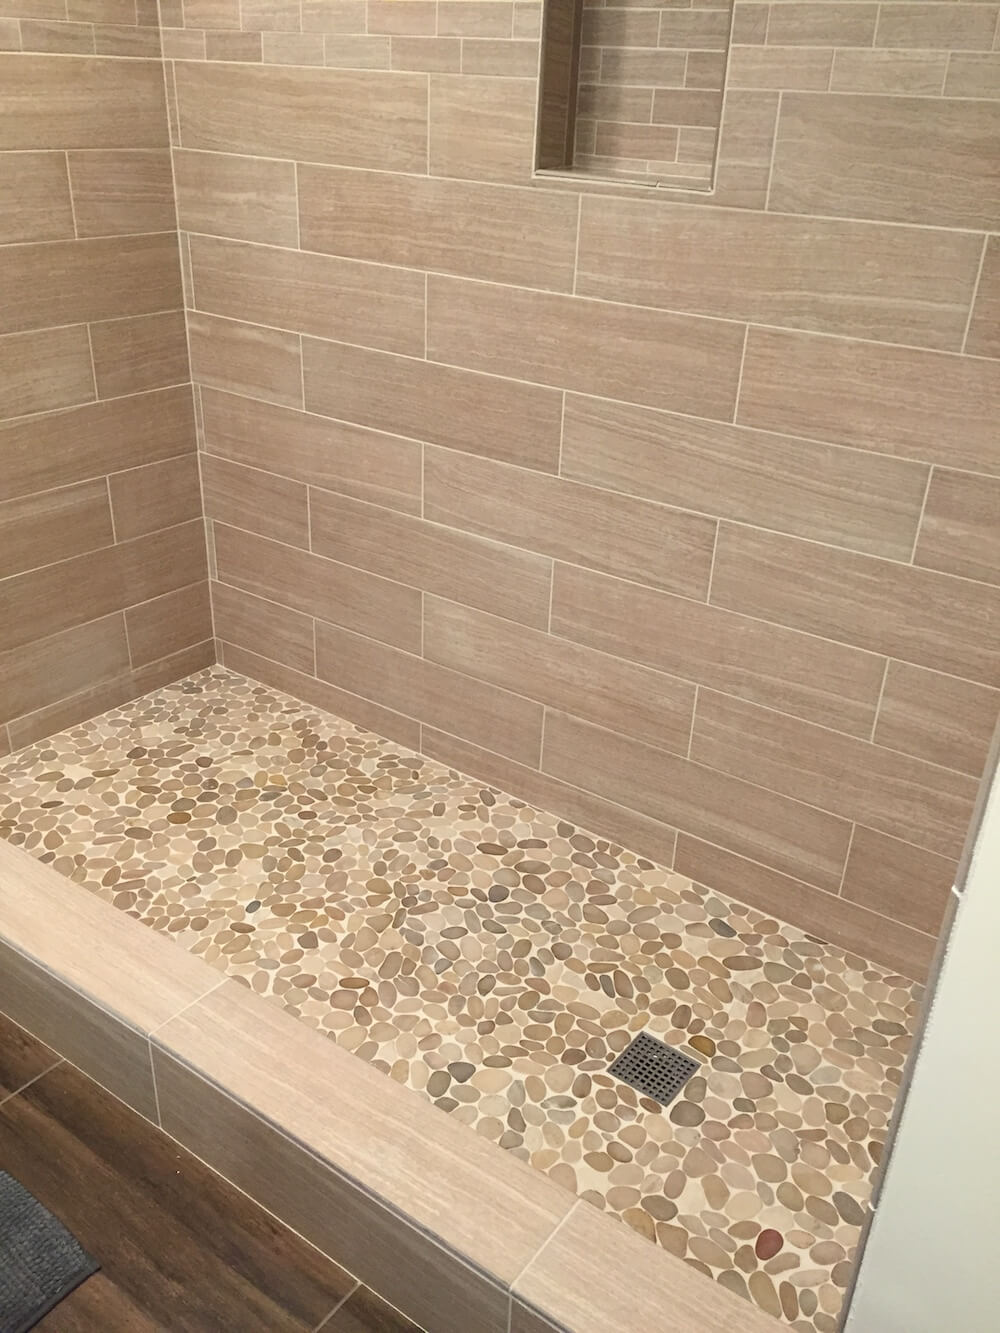 2018 Cost To Tile A Shower | How Much To Tile A Shower